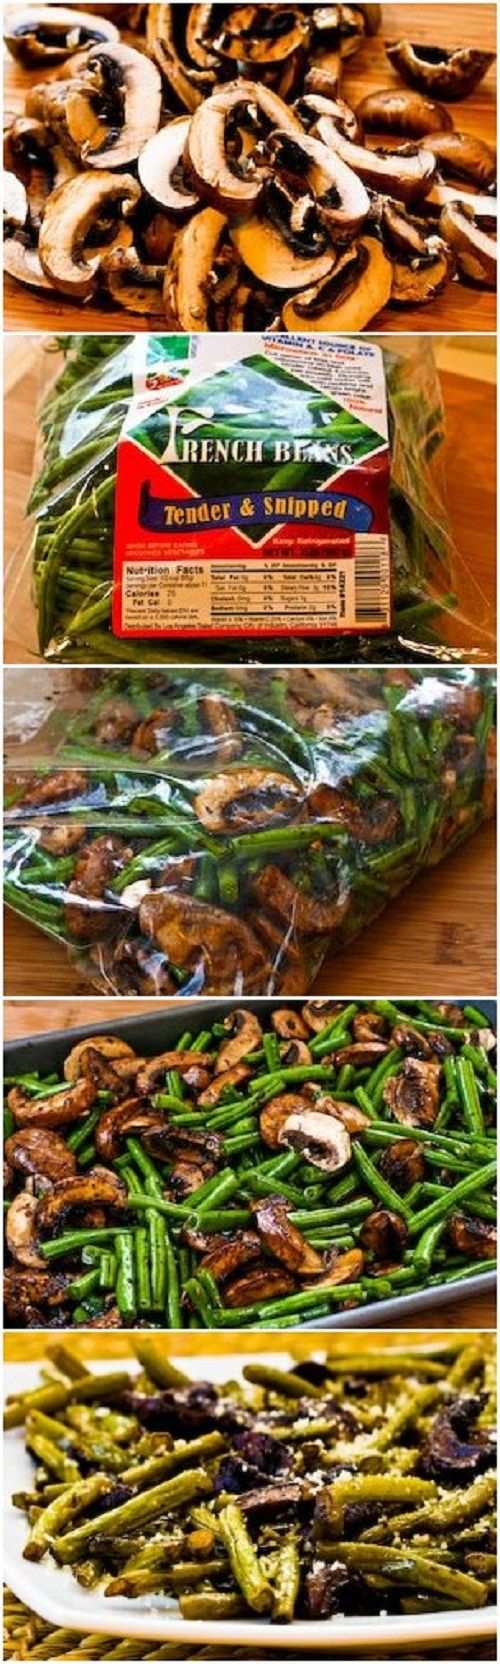 Best Recipes, #9 Roasted Green Beans with Mushrooms, Balsamic, and Parmesan